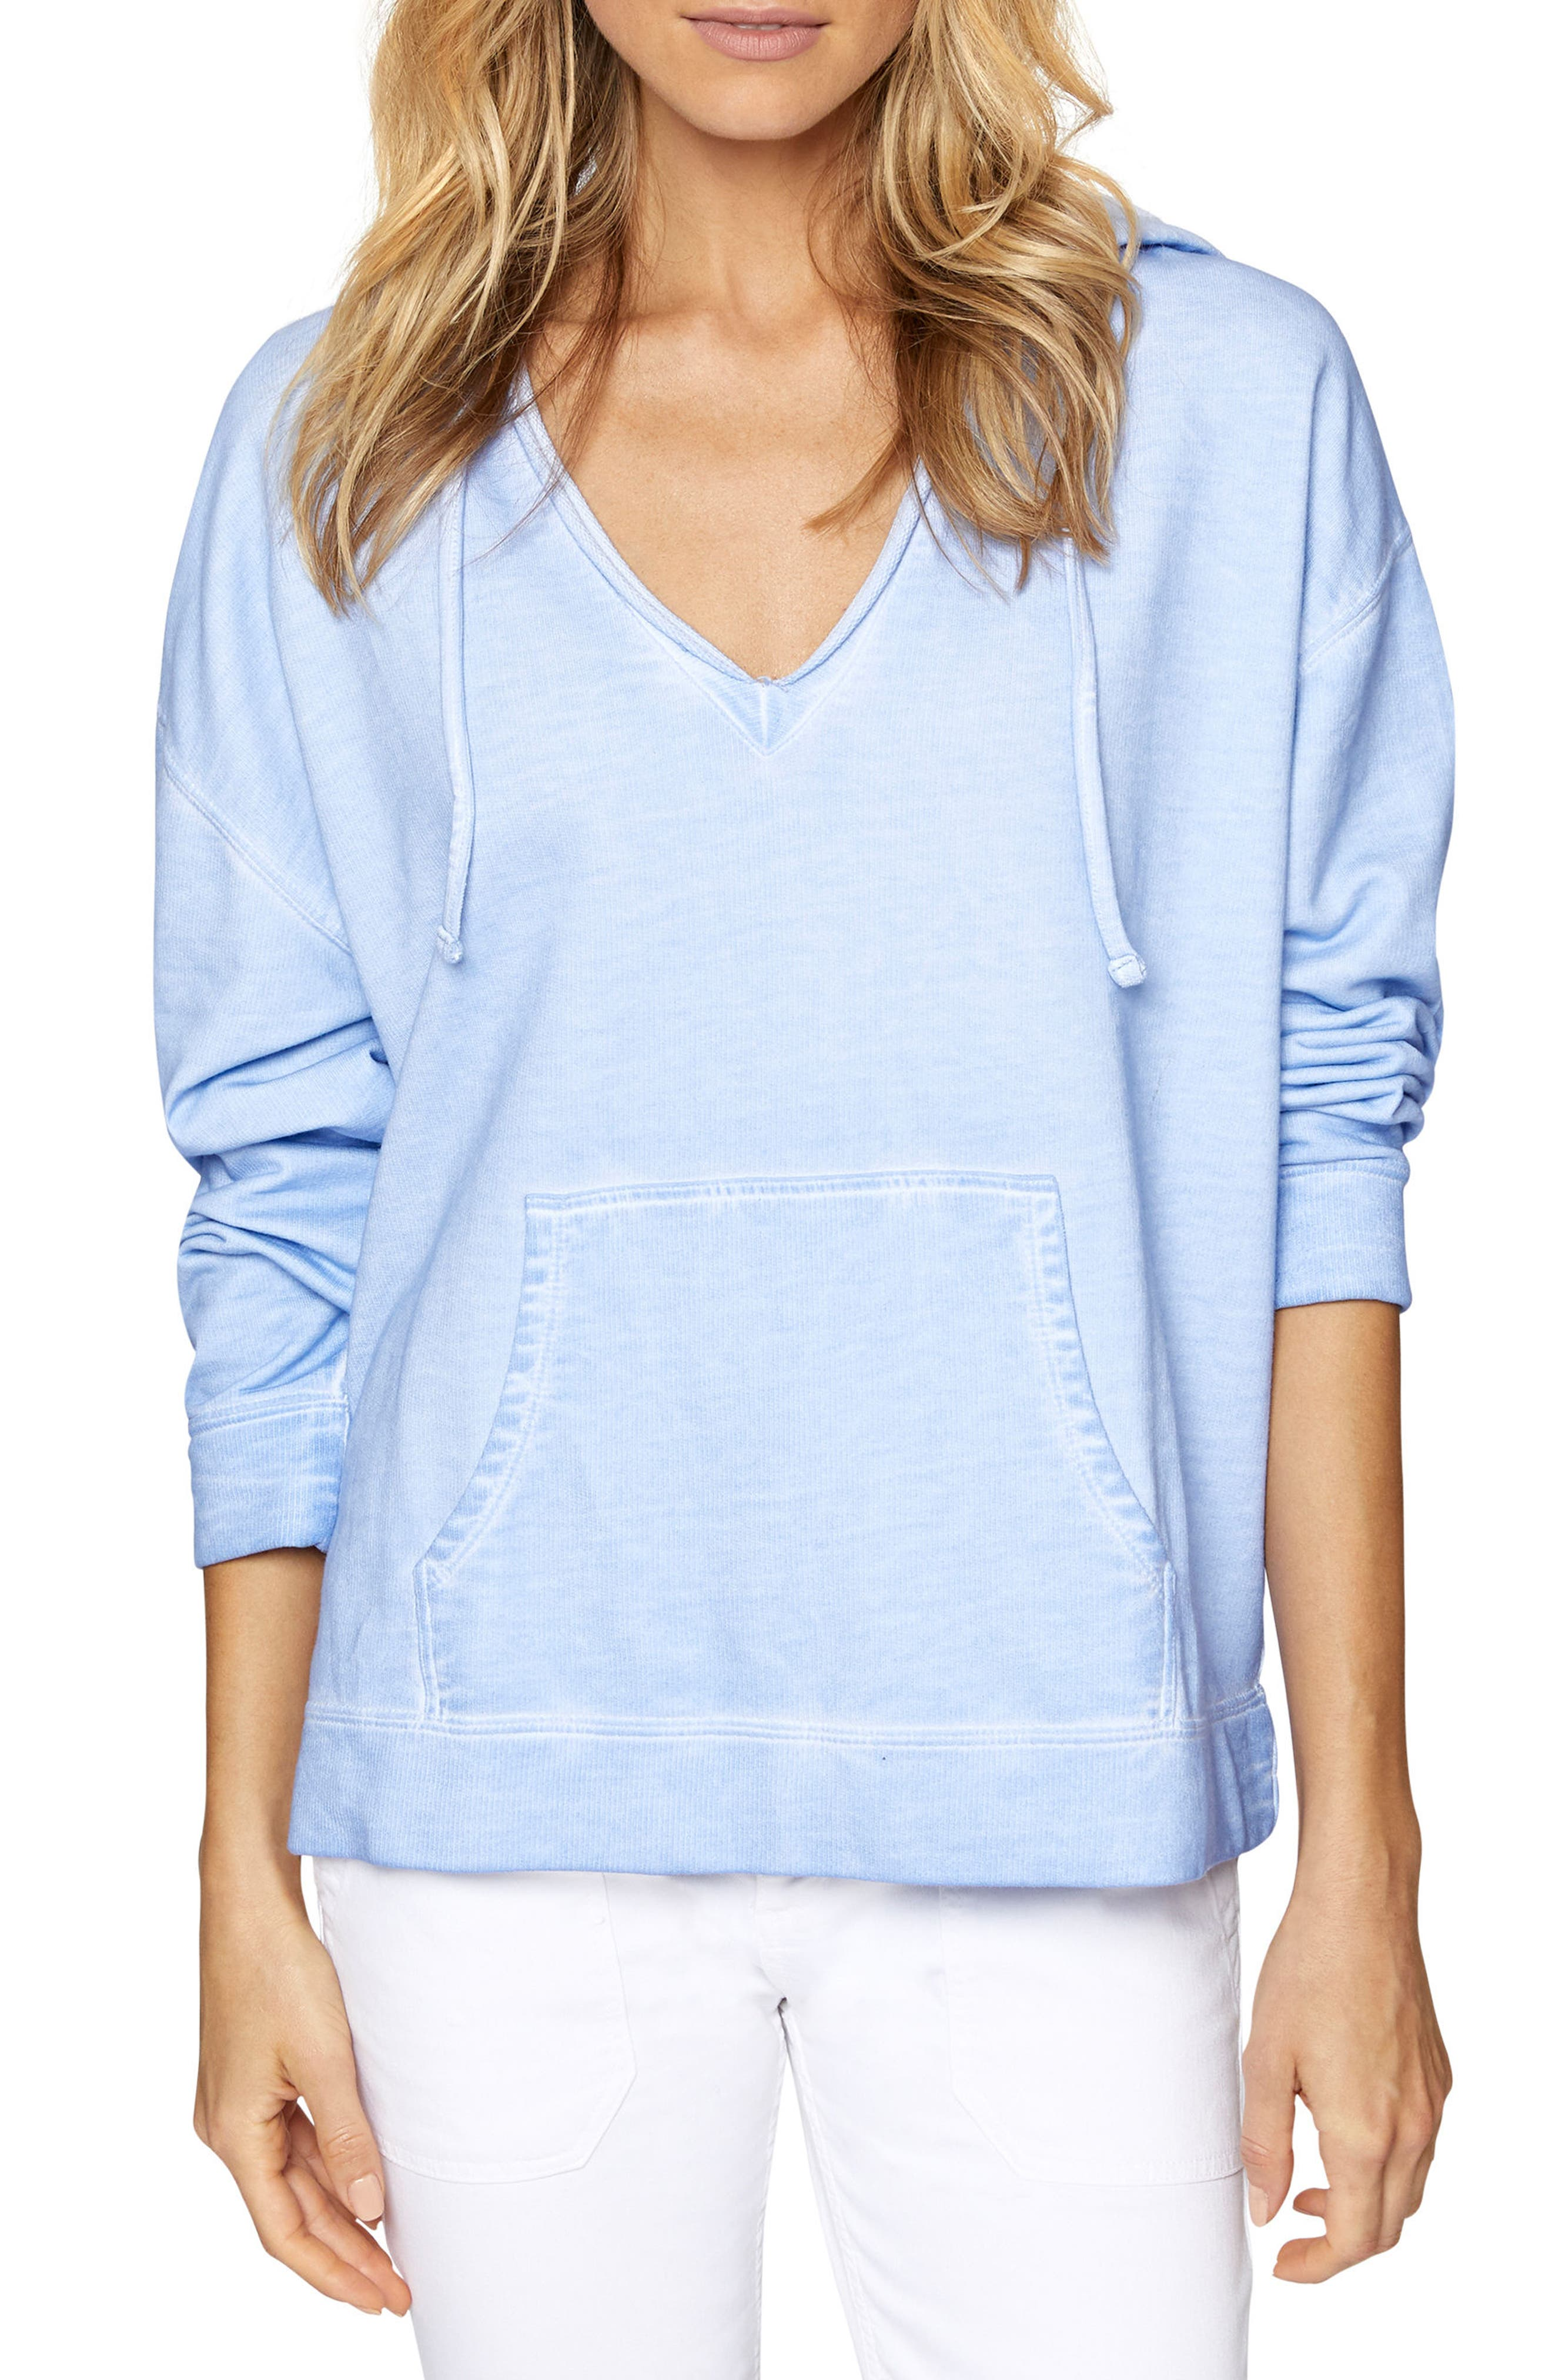 Shiloh Hoodie,                         Main,                         color, Icy Blue